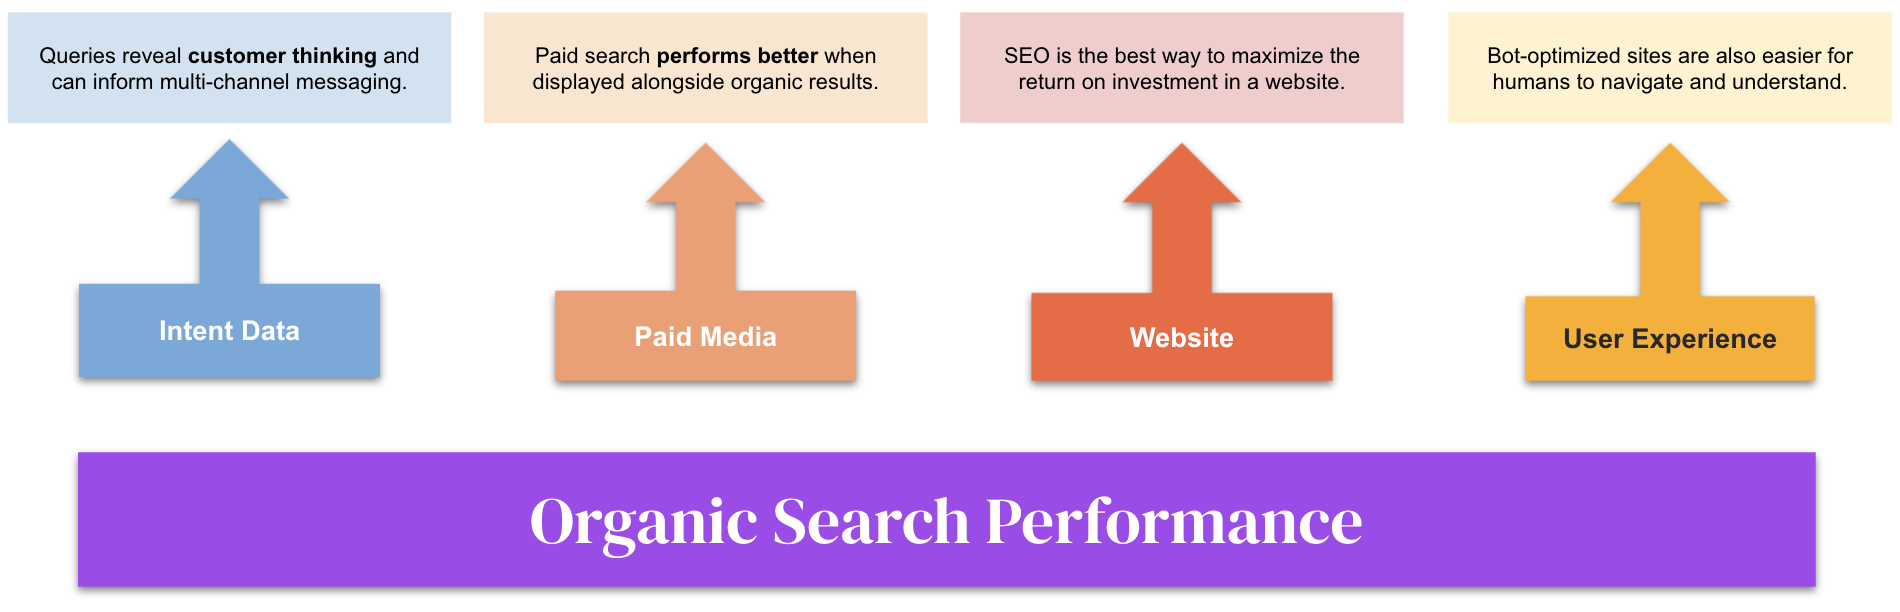 The impact of organic search on other channels